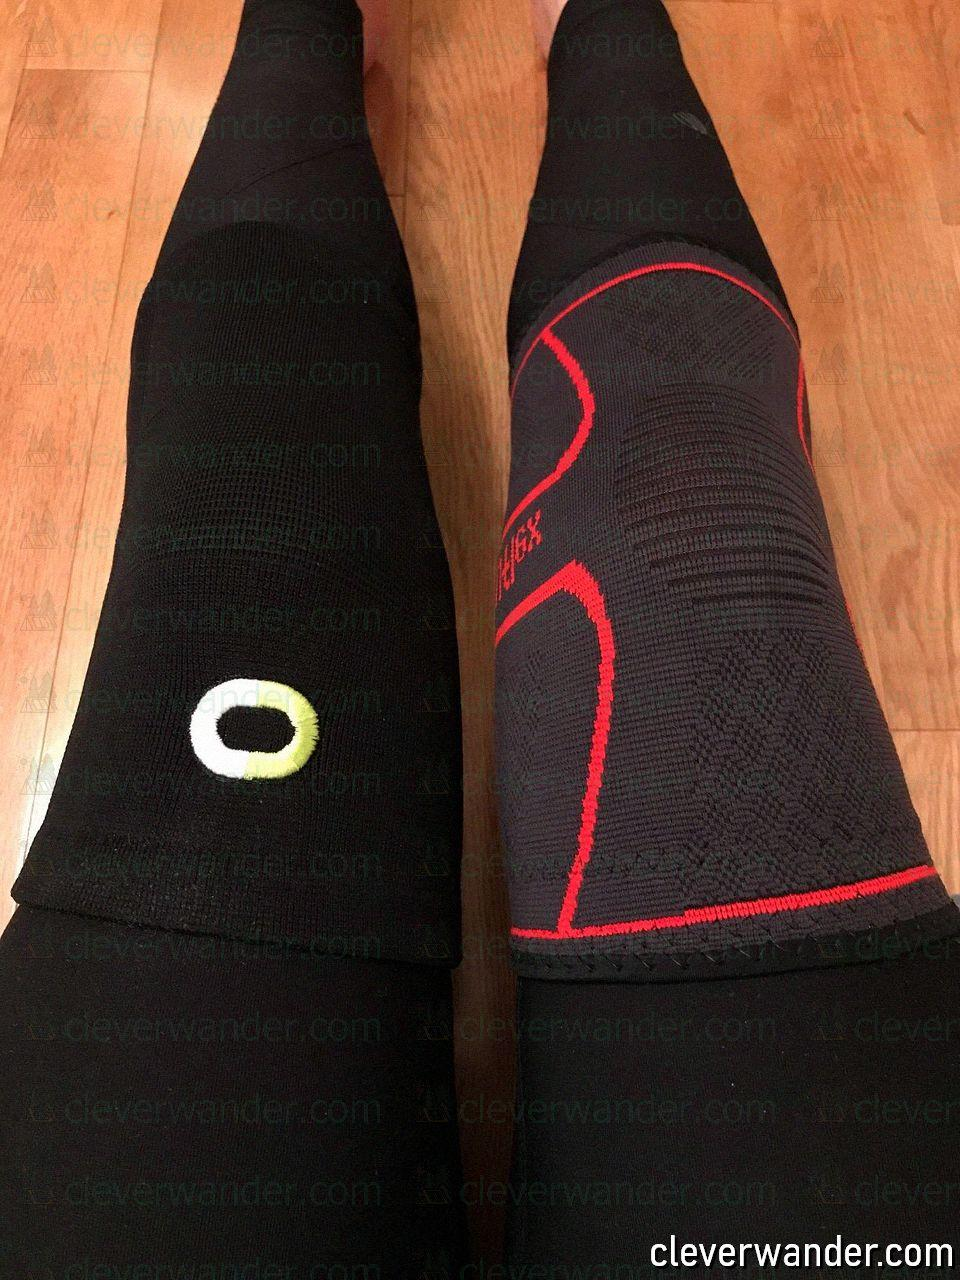 UFlex Athletics Knee Sleeve - image review 3